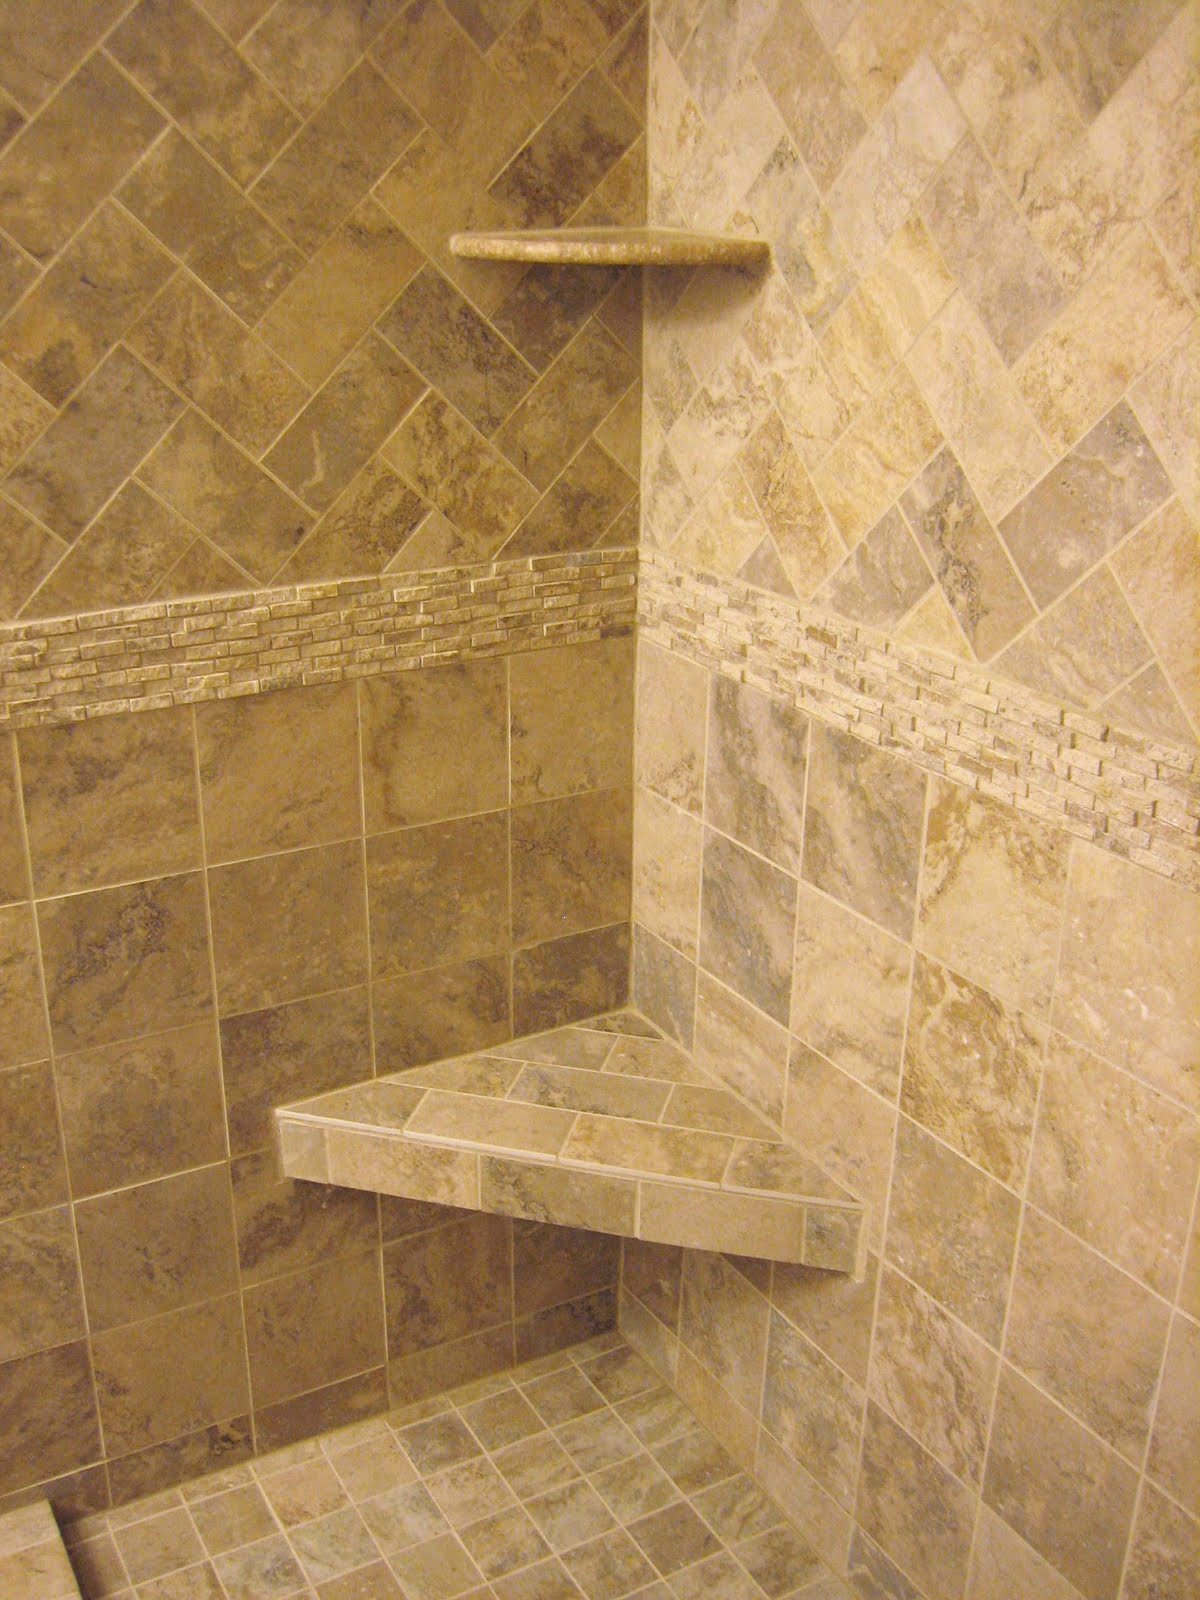 33 Amazing Pictures And Ideas Of Old Fashioned Bathroom Floor Tile 2021